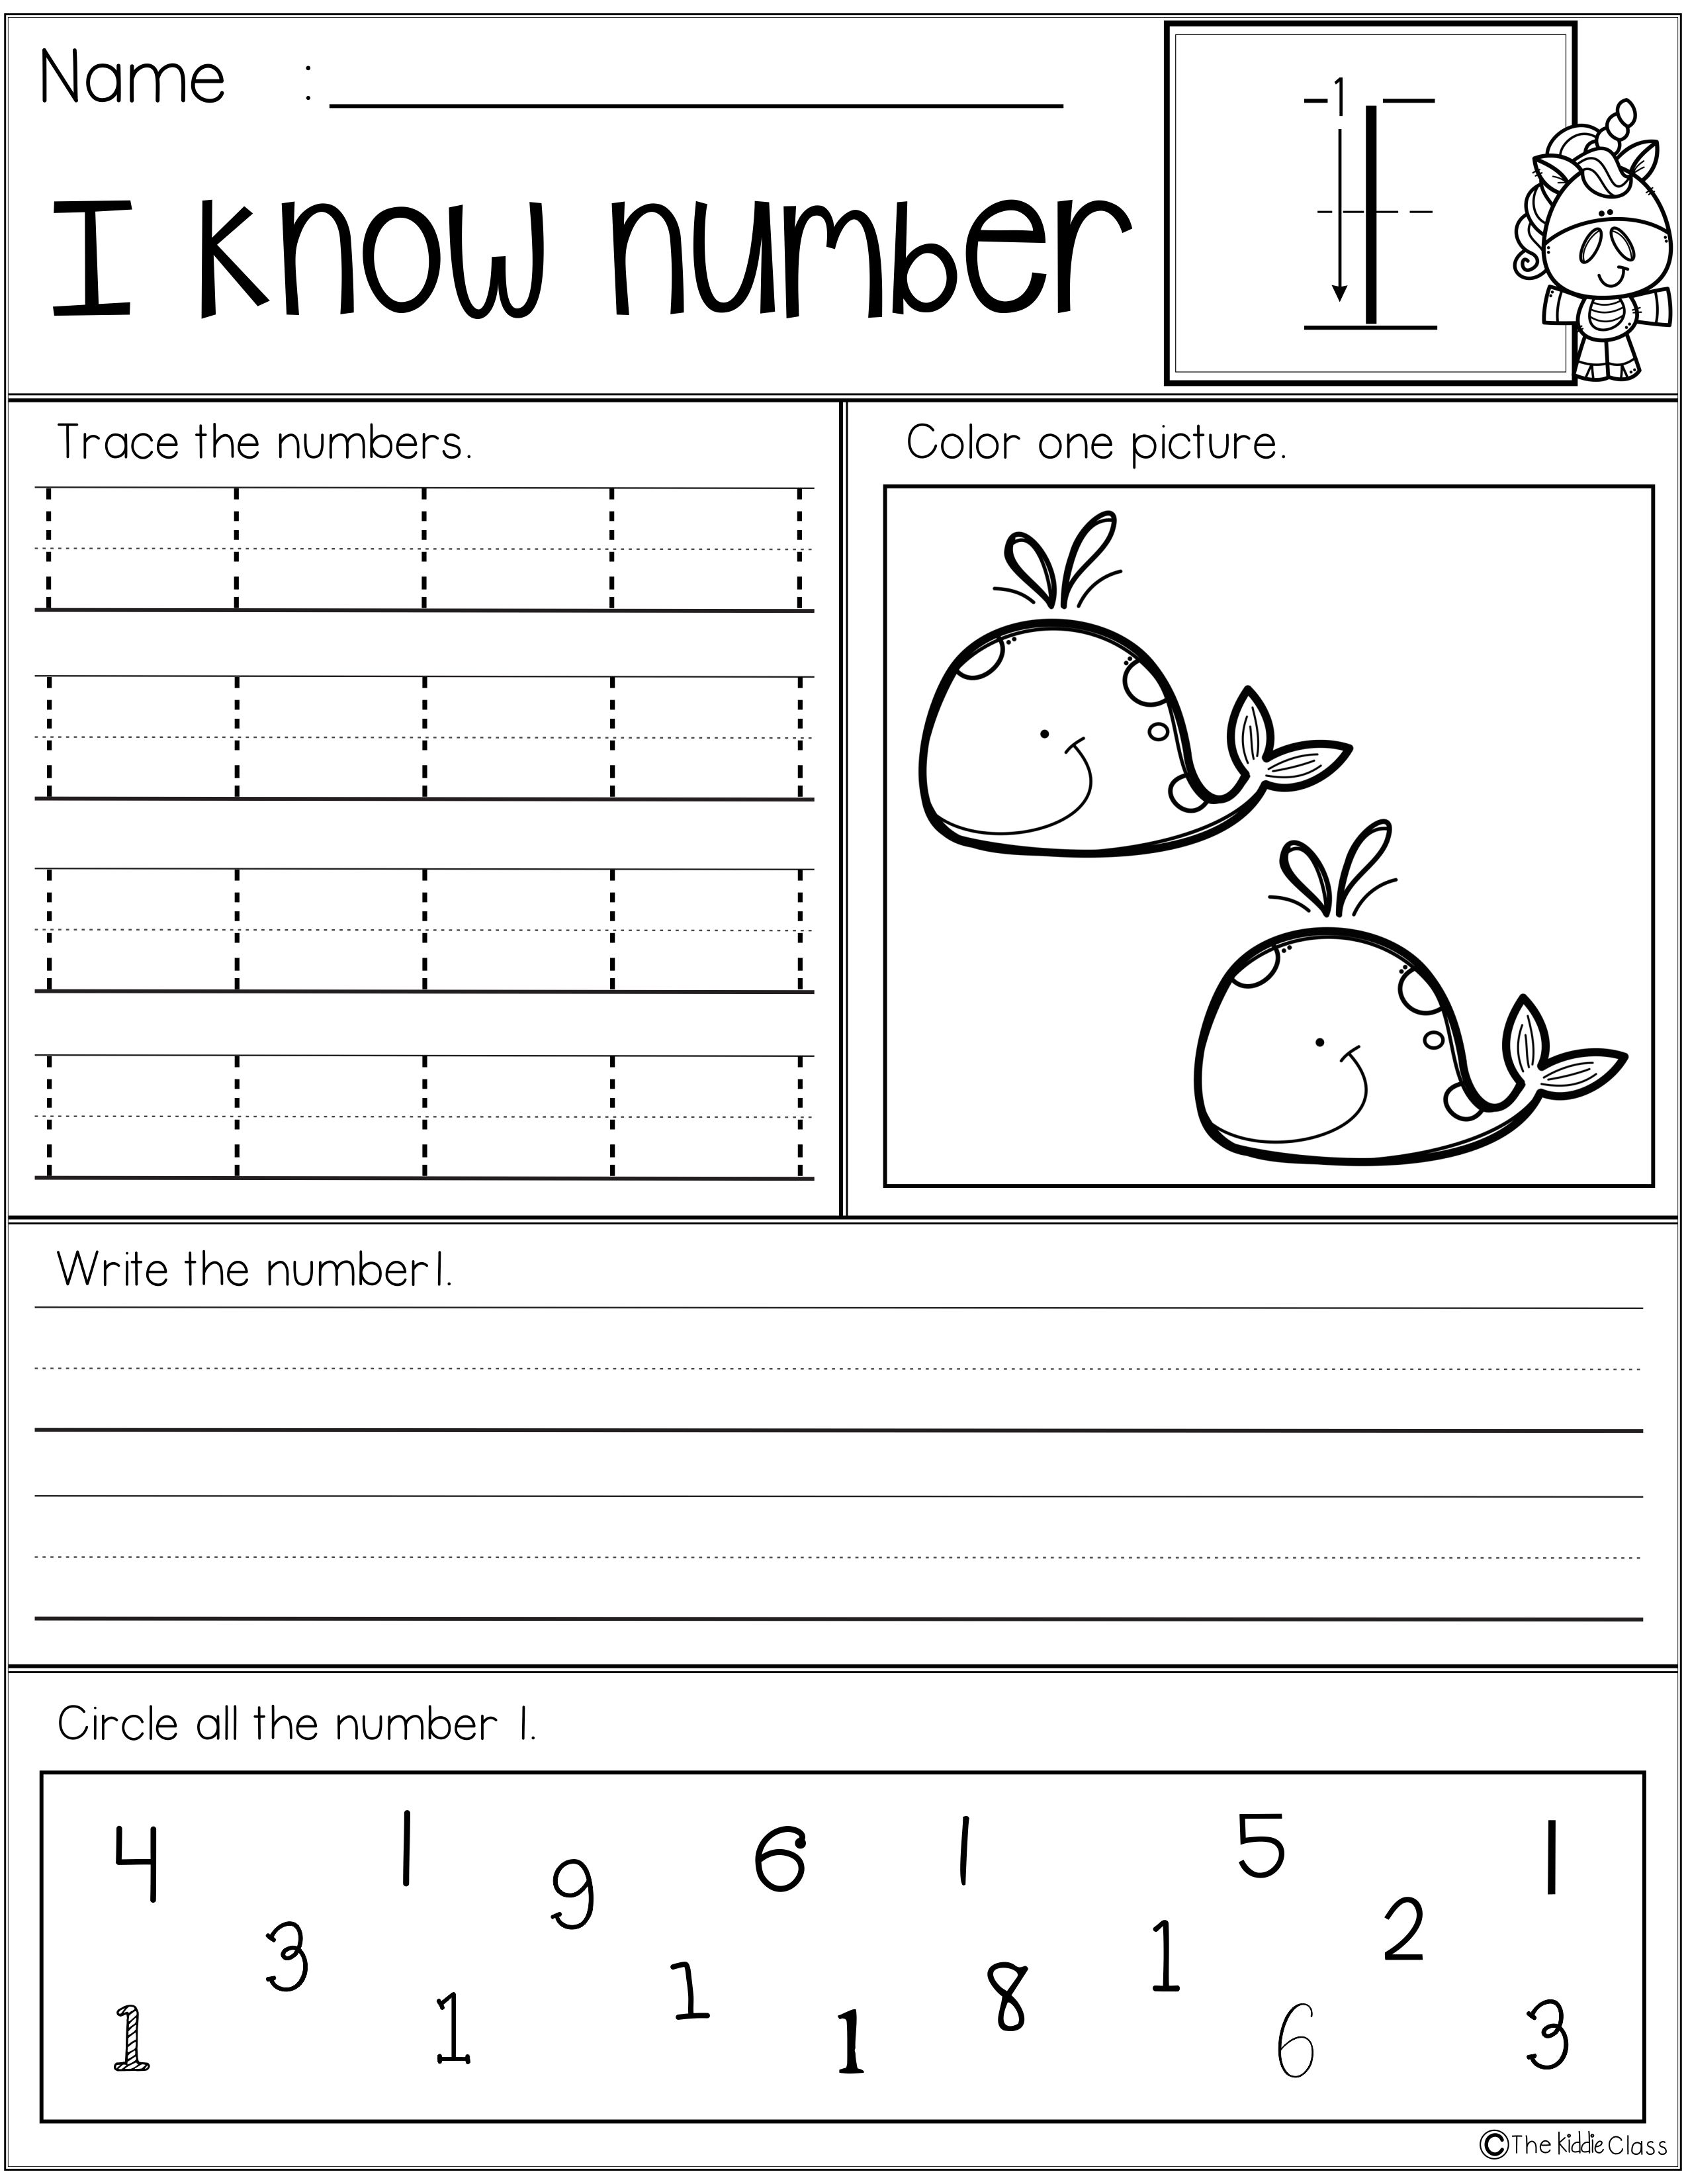 https://cute766.info/numbers-worksheets-learning-numbers-for-preschool-kindergarten-and-grade-1-k5-learning/ [ 91 x 3300 Pixel ]